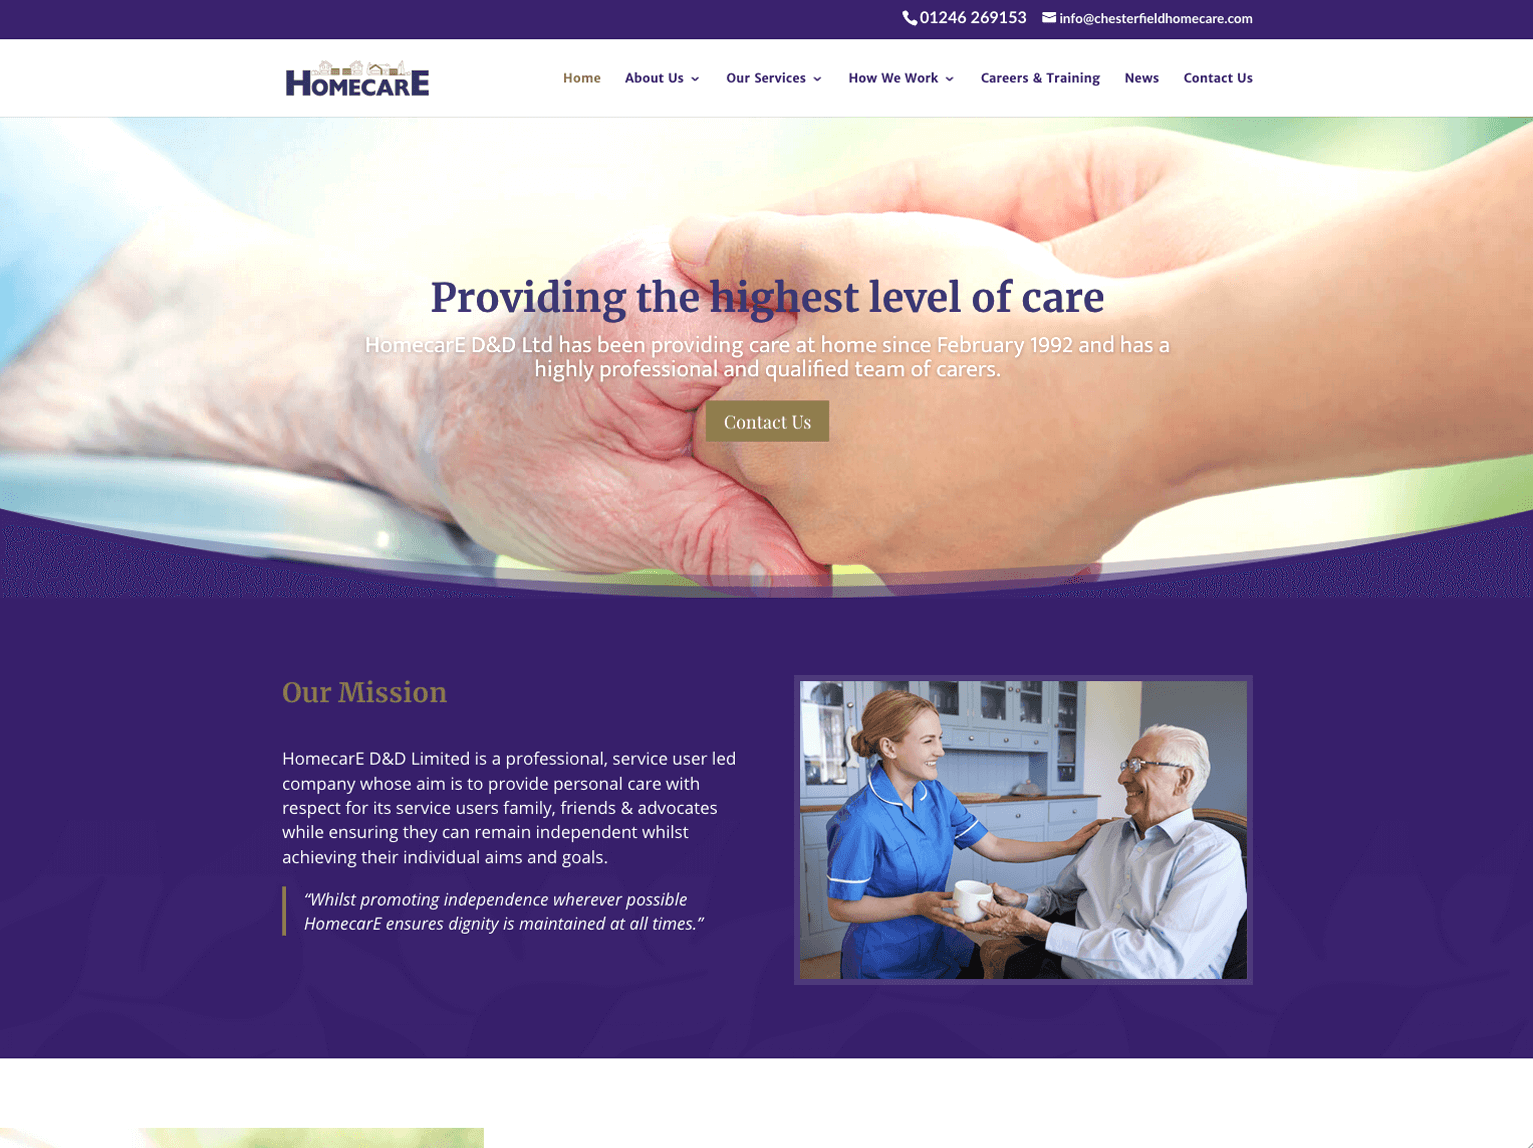 Homecare Chesterfield homepage